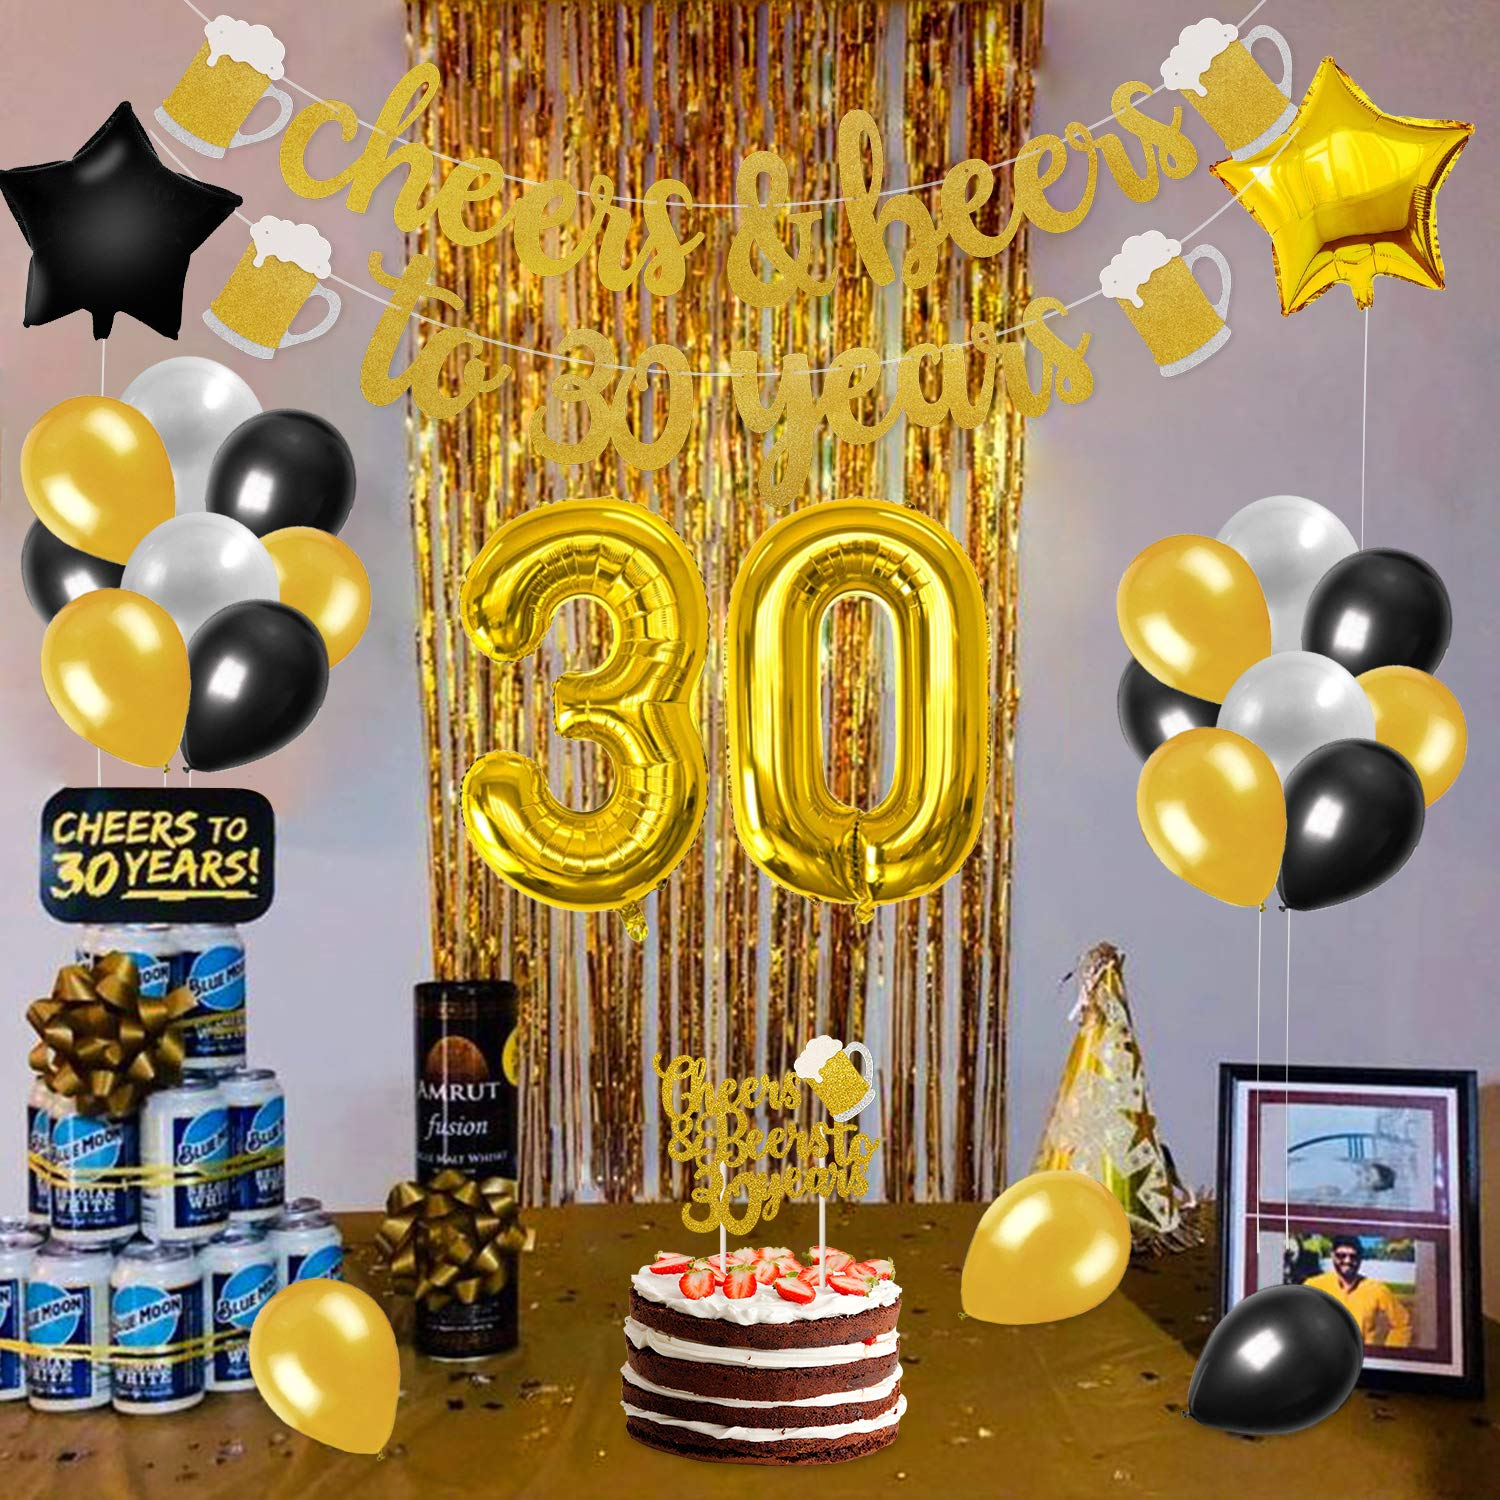 30th Birthday Party Decorations Kit Perfect 30 Years Old Party Supplies Cheers Beers To 30 Years Banner Cake Toper 30 Gold Number Balloons Black